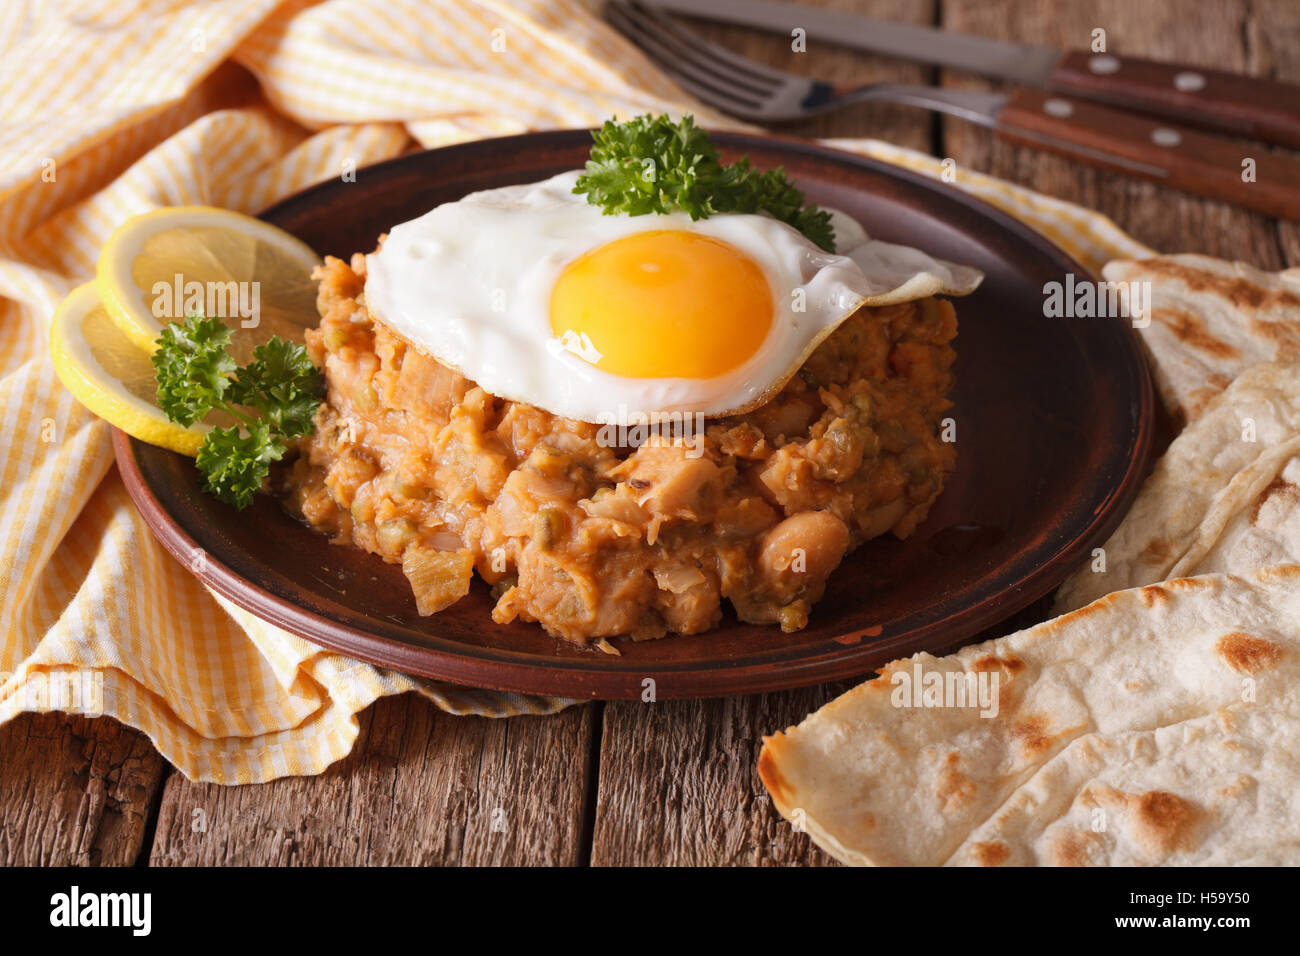 Arabic ful medames with a fried egg and bread close-up on the table. horizontal - Stock Image